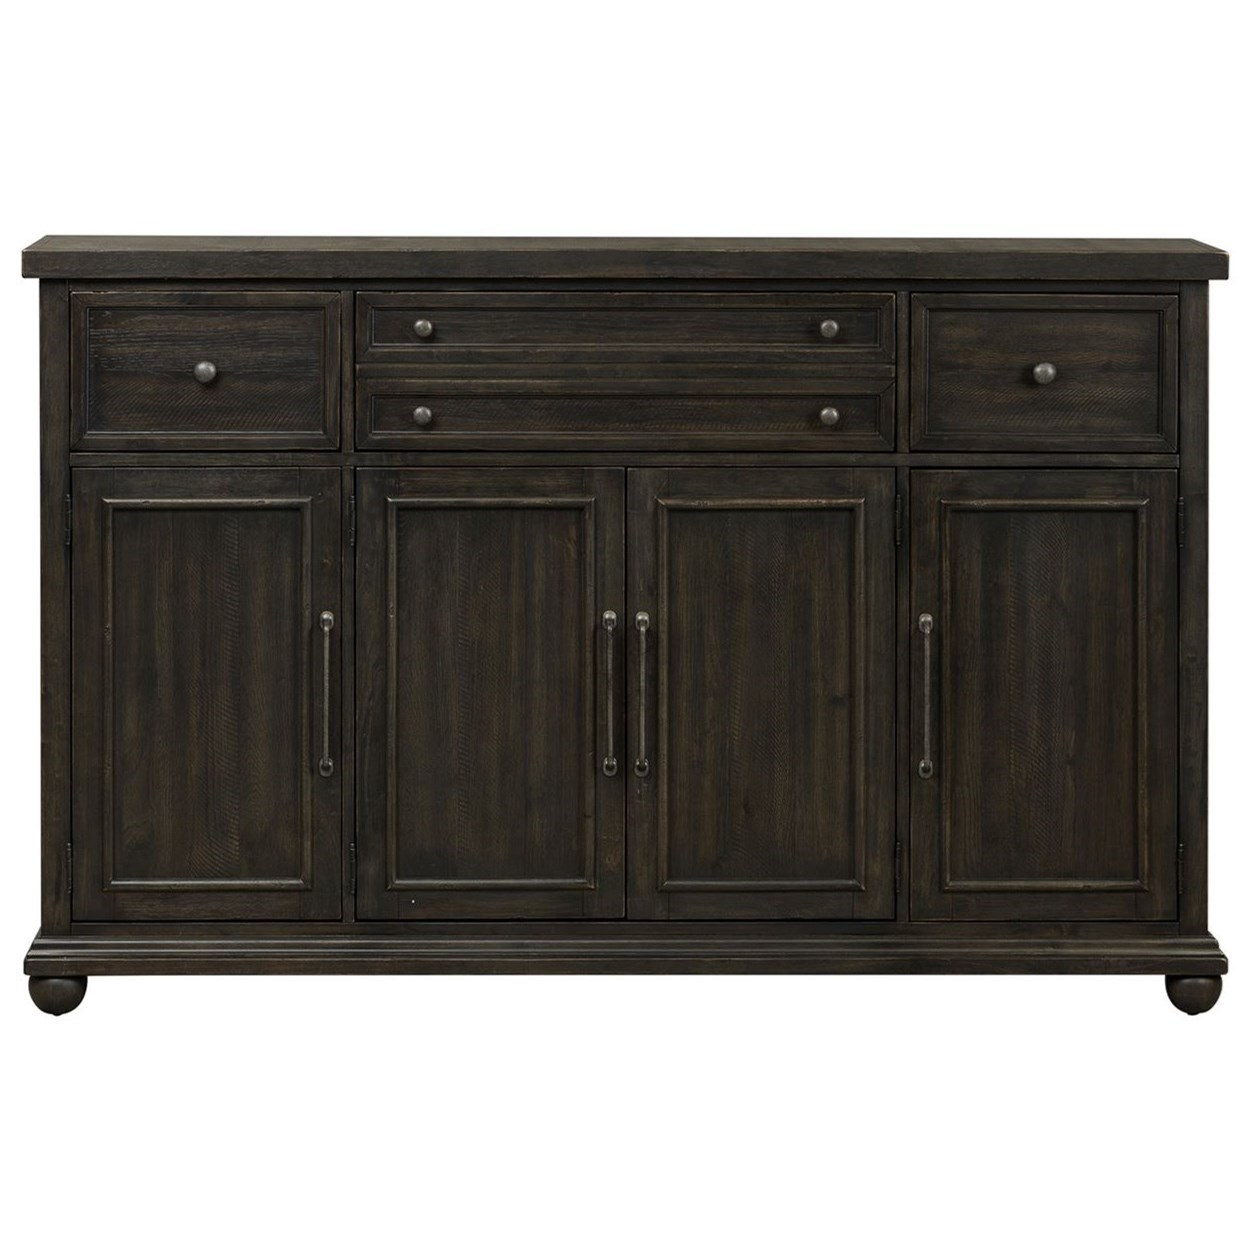 Harvest Home Hall Buffet by Liberty Furniture at Northeast Factory Direct